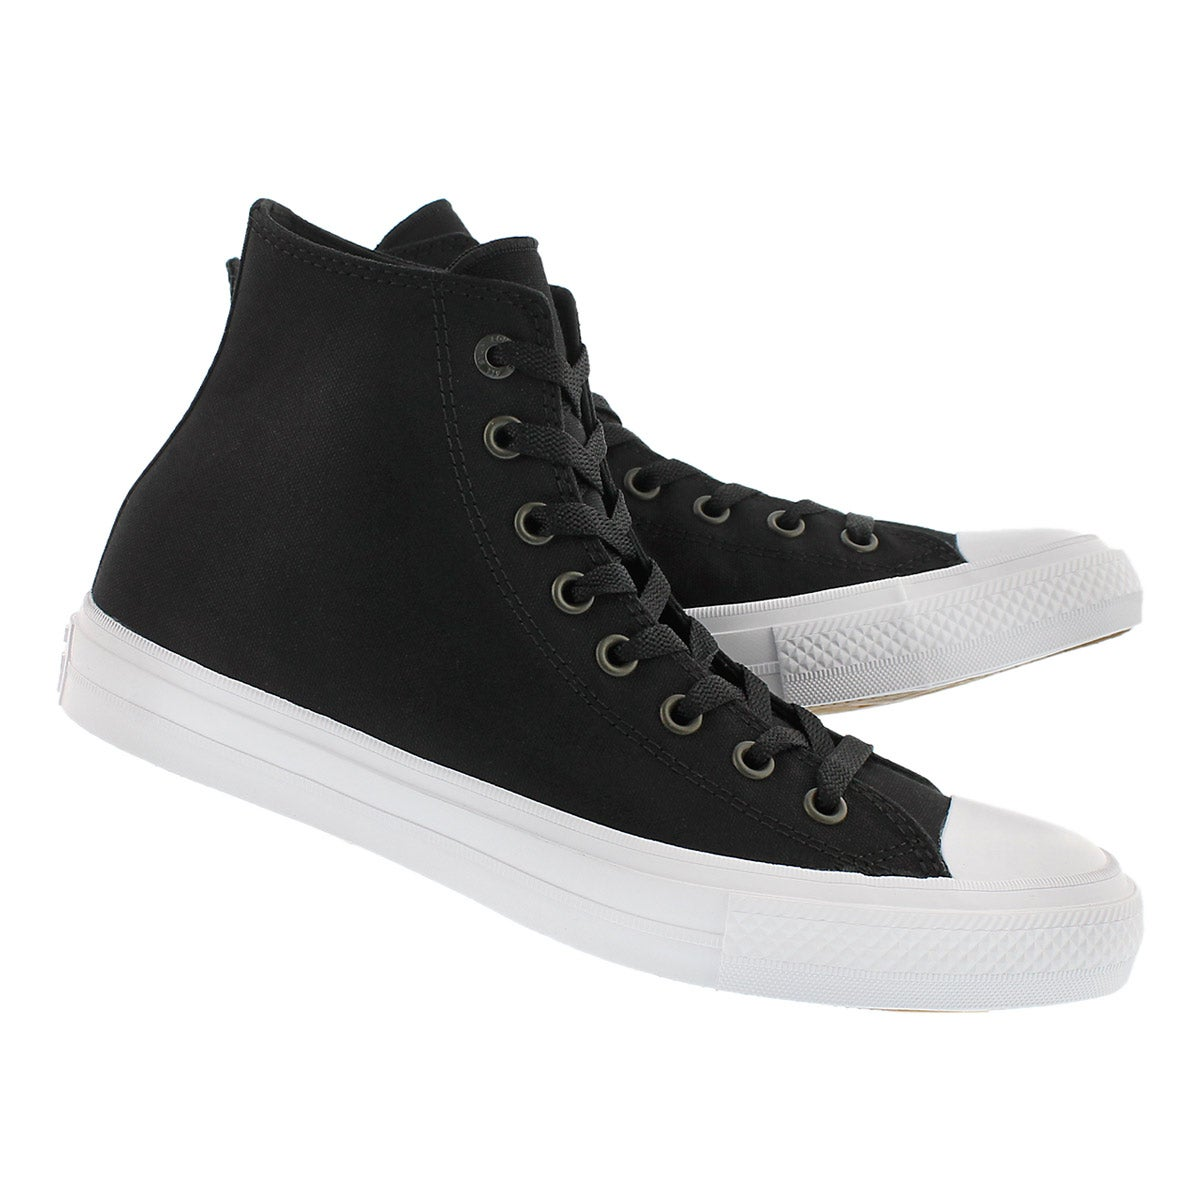 Mns Chuck II Viz Flow black hi top